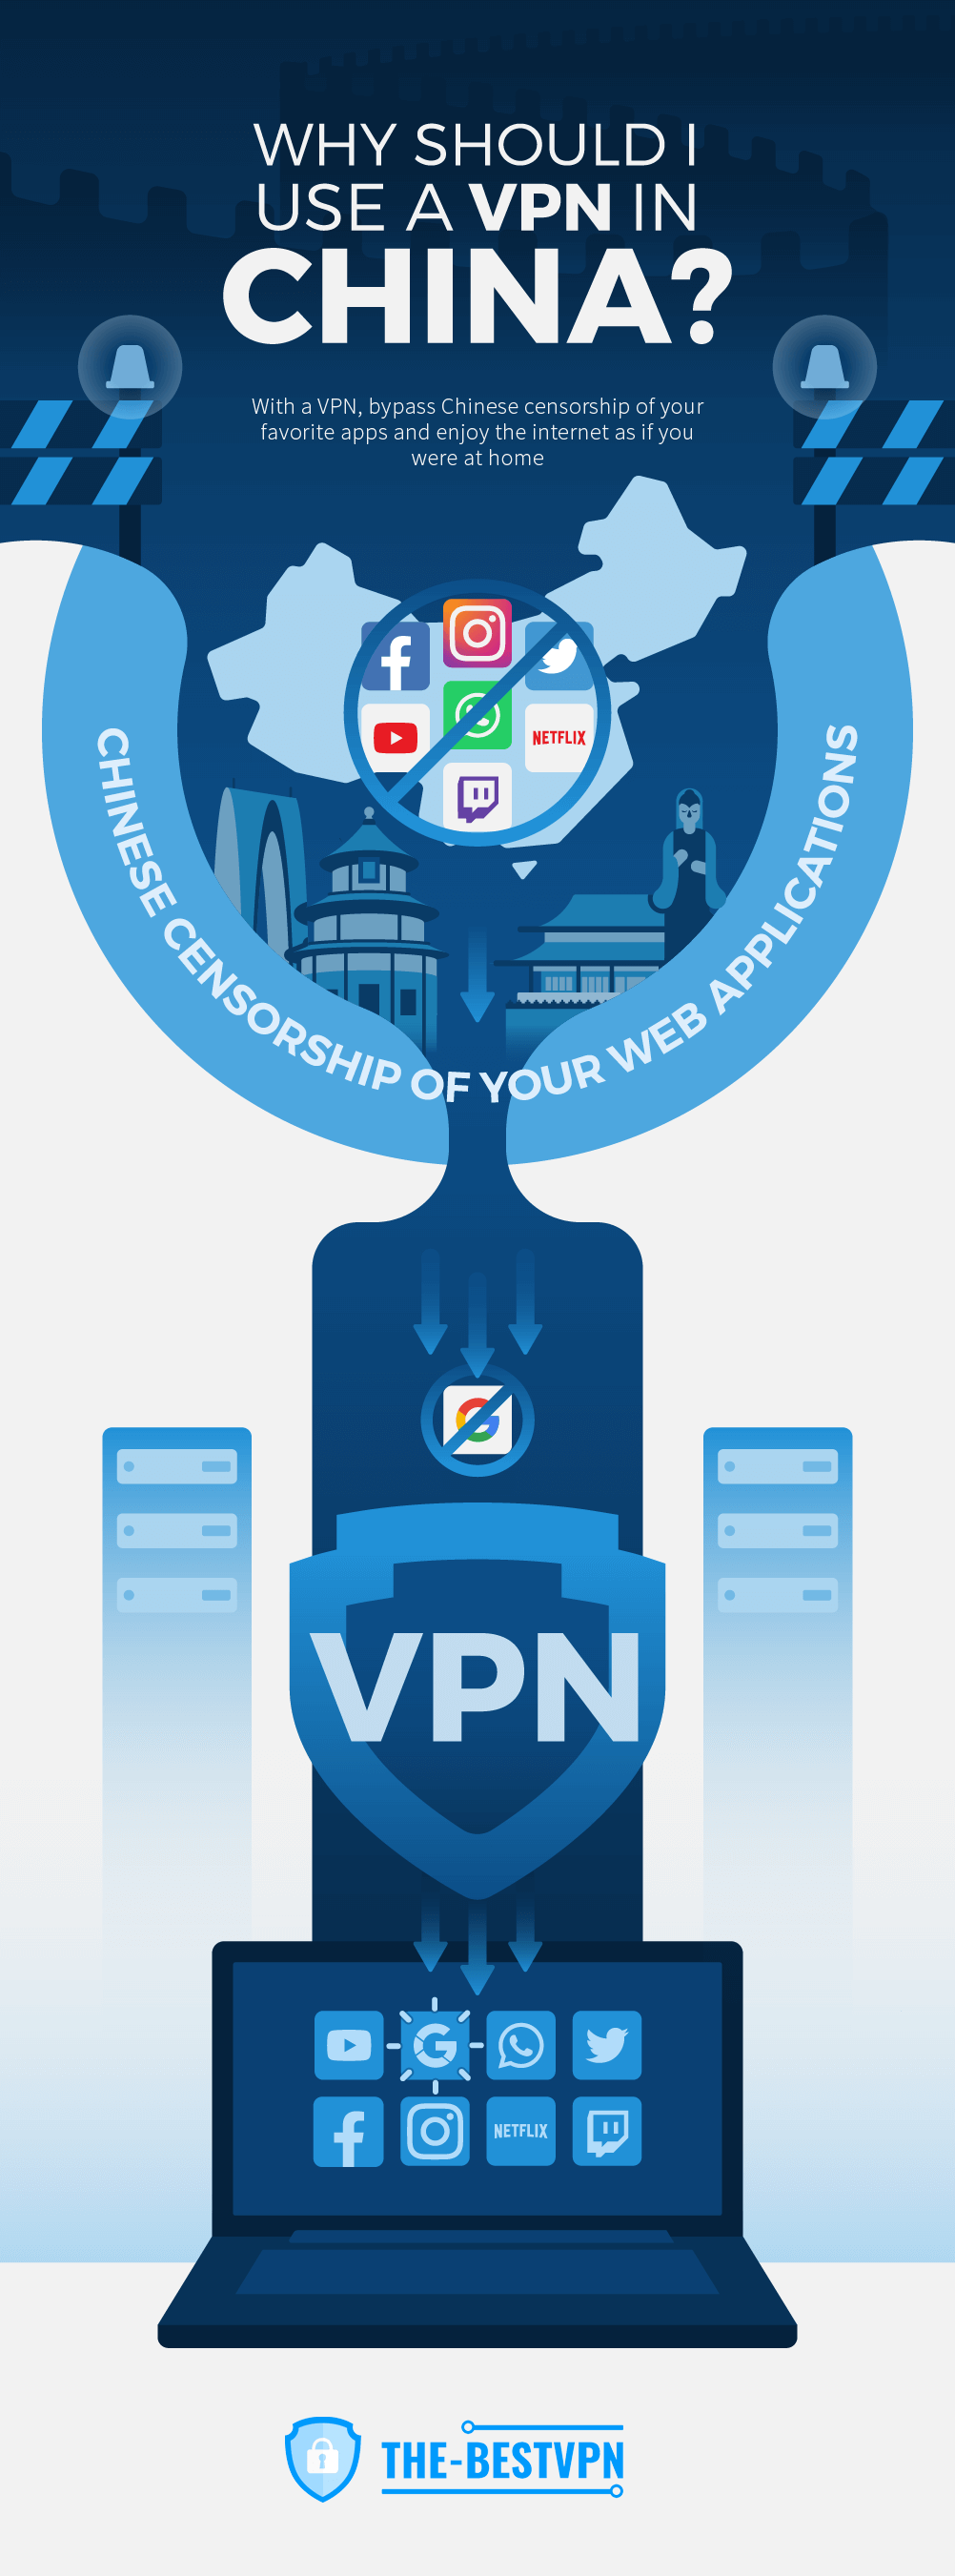 Why use VPN in China